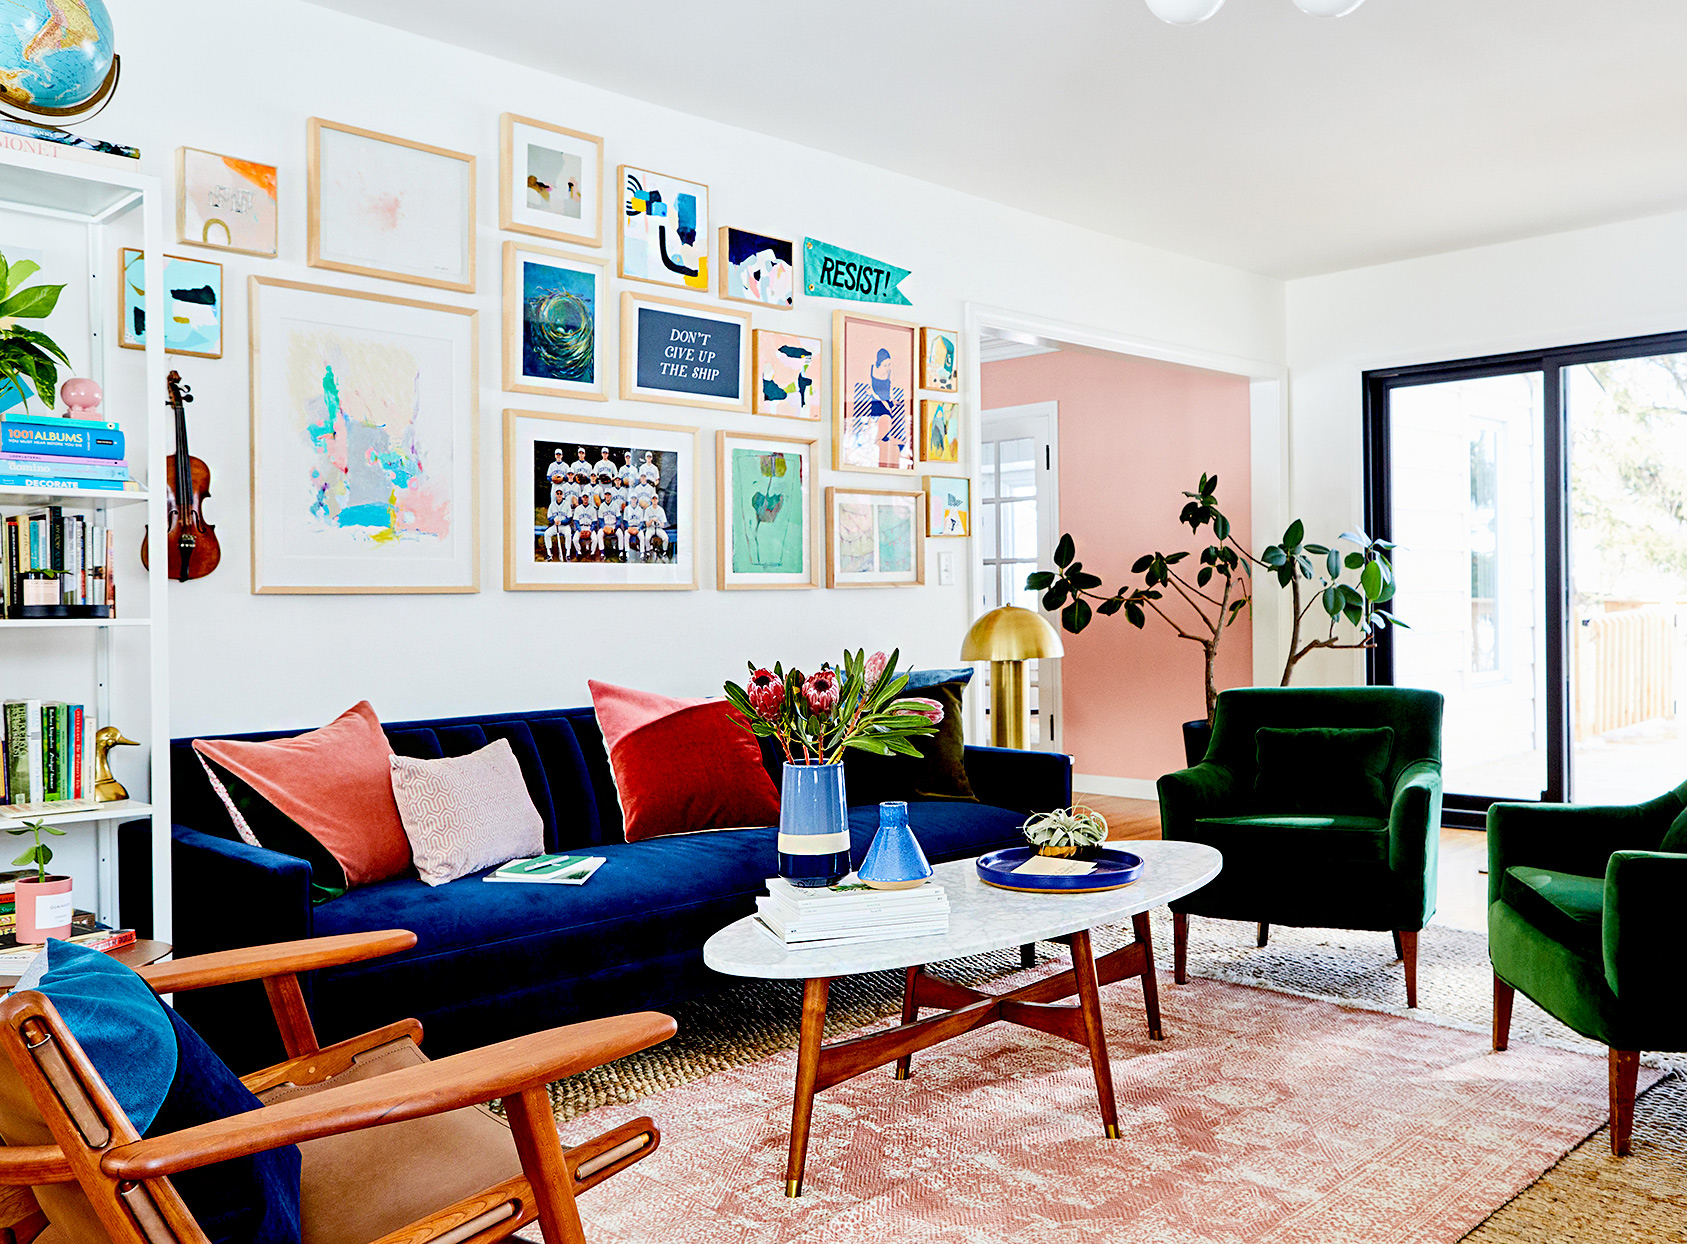 Living room with multiple framed artwork behind couch